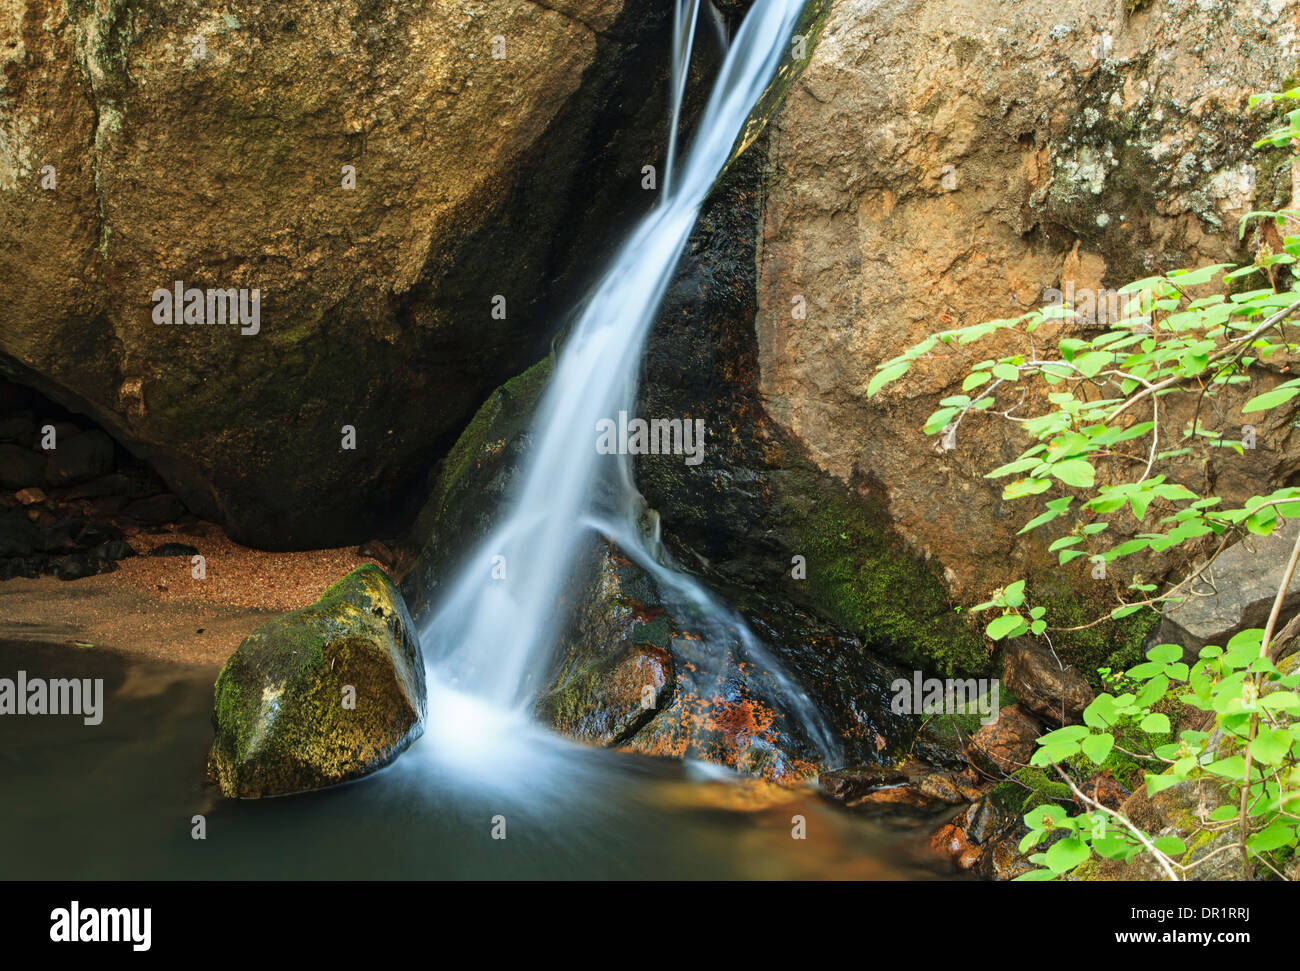 Felsen und Wasserfall, En Medio Fluss Santa Fe National Forest, New Mexico, USA Stockbild